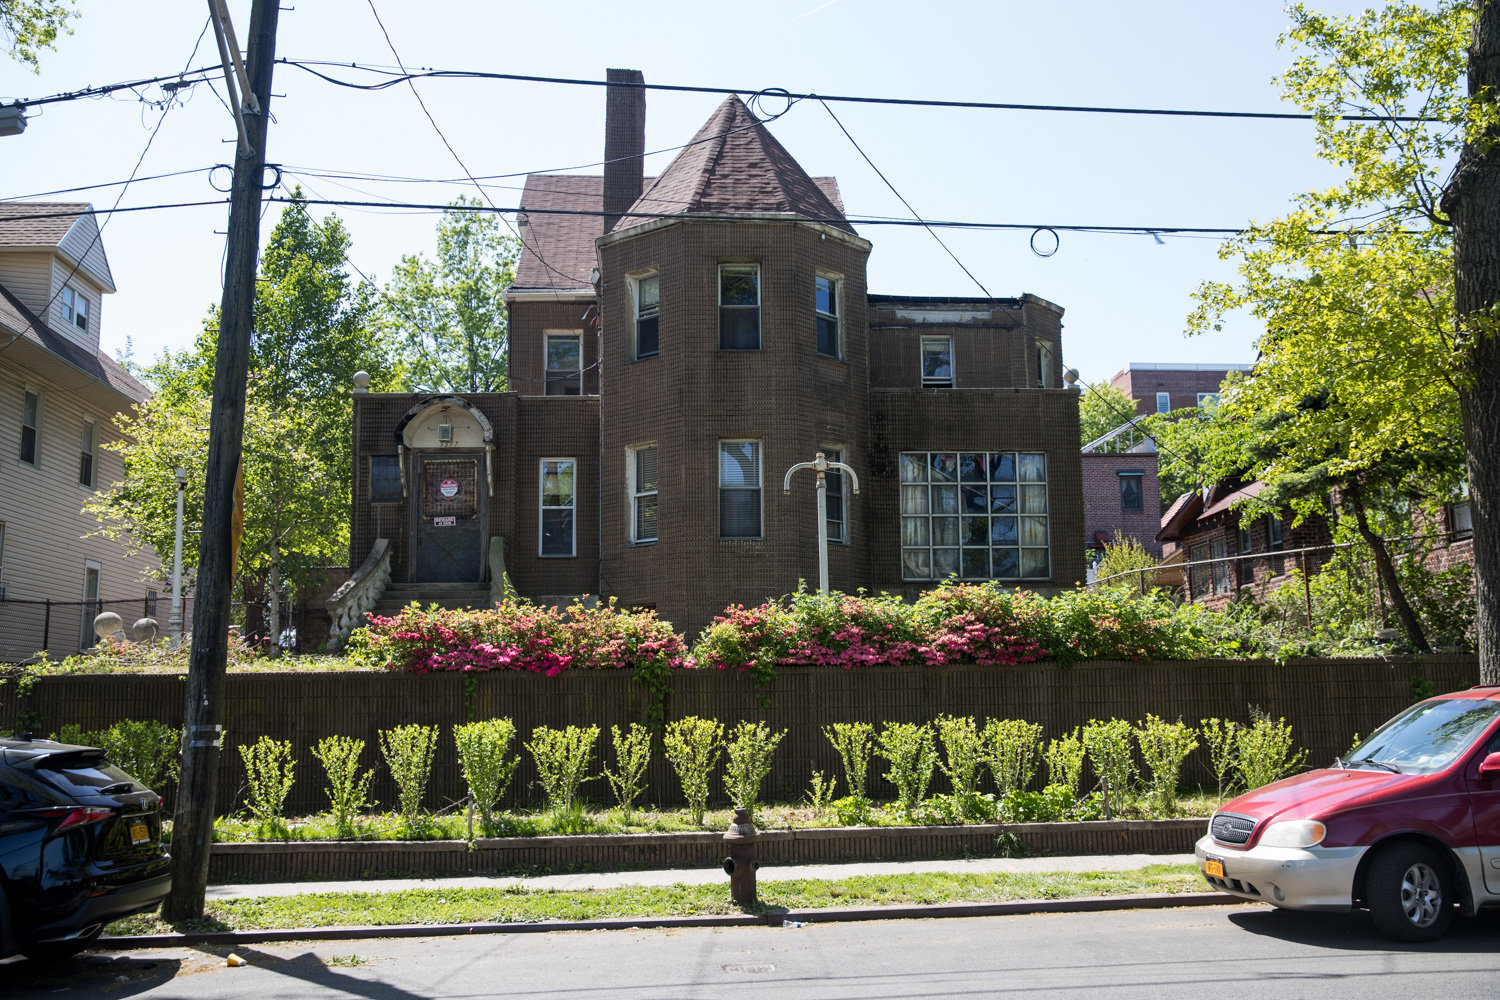 A century-old home on Sedgwick Avenue worth just $31,000 two decades ago sold for $1.25 million earlier this month, prompting speculation it will be raised for an apartment building that could climb as high as eight stories, based on current zoning.